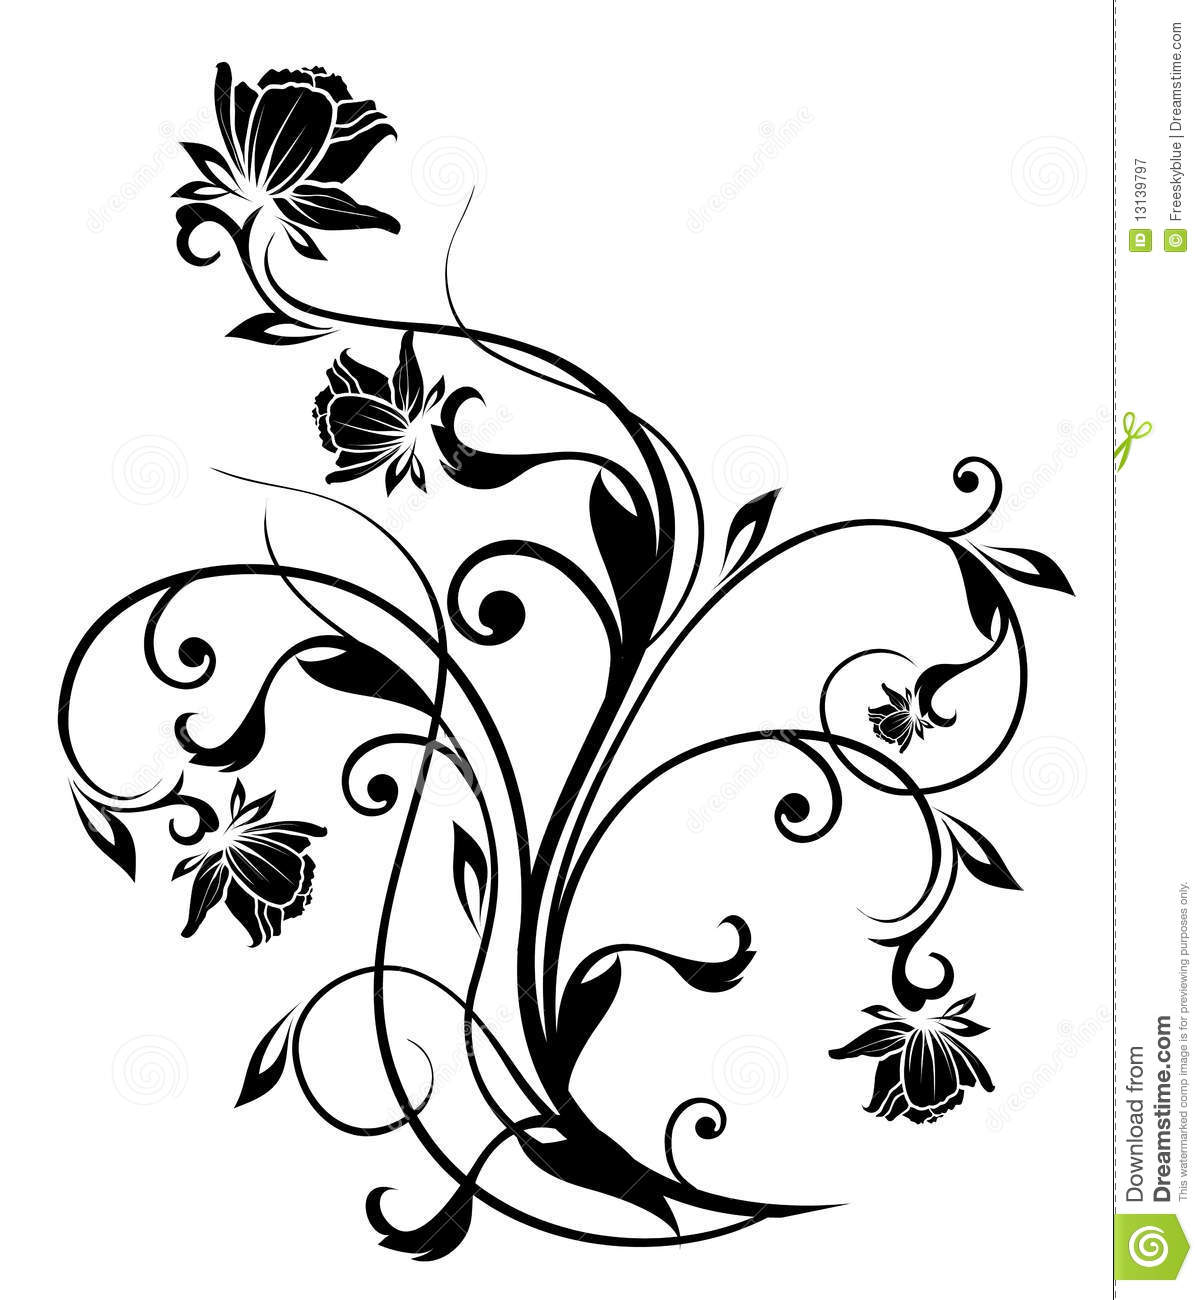 Stickers Wall Art Black Flower Silhouette Royalty Free Stock Photography